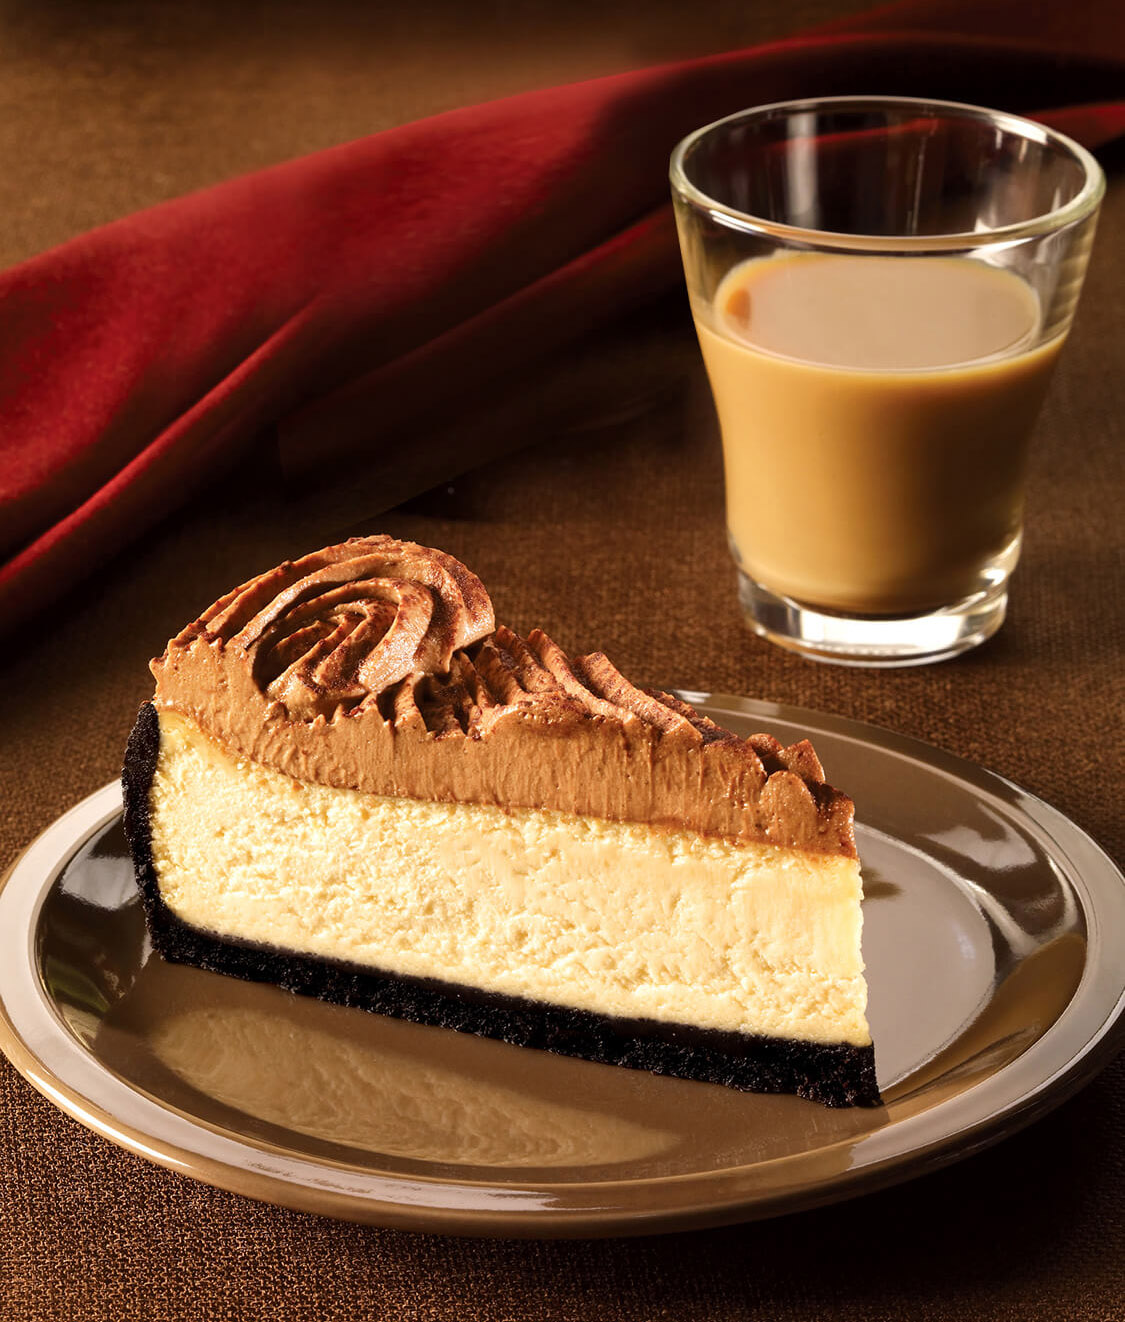 Dianne's Irish Cream Cheescake